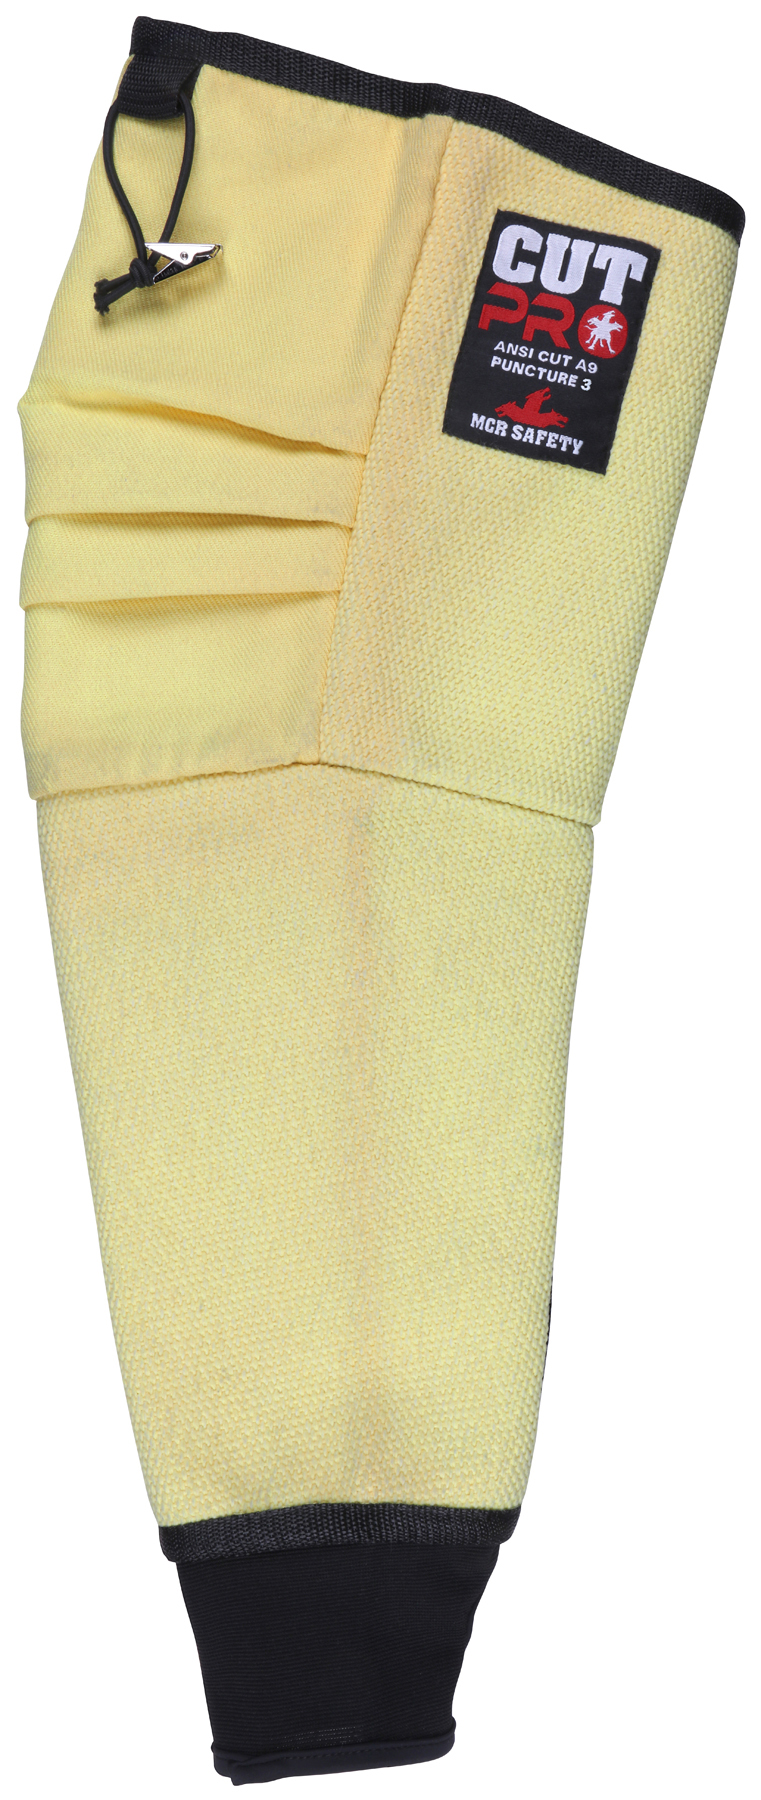 New Woven DuPont Kevlar with Cut Level A9 Protection Sleeve